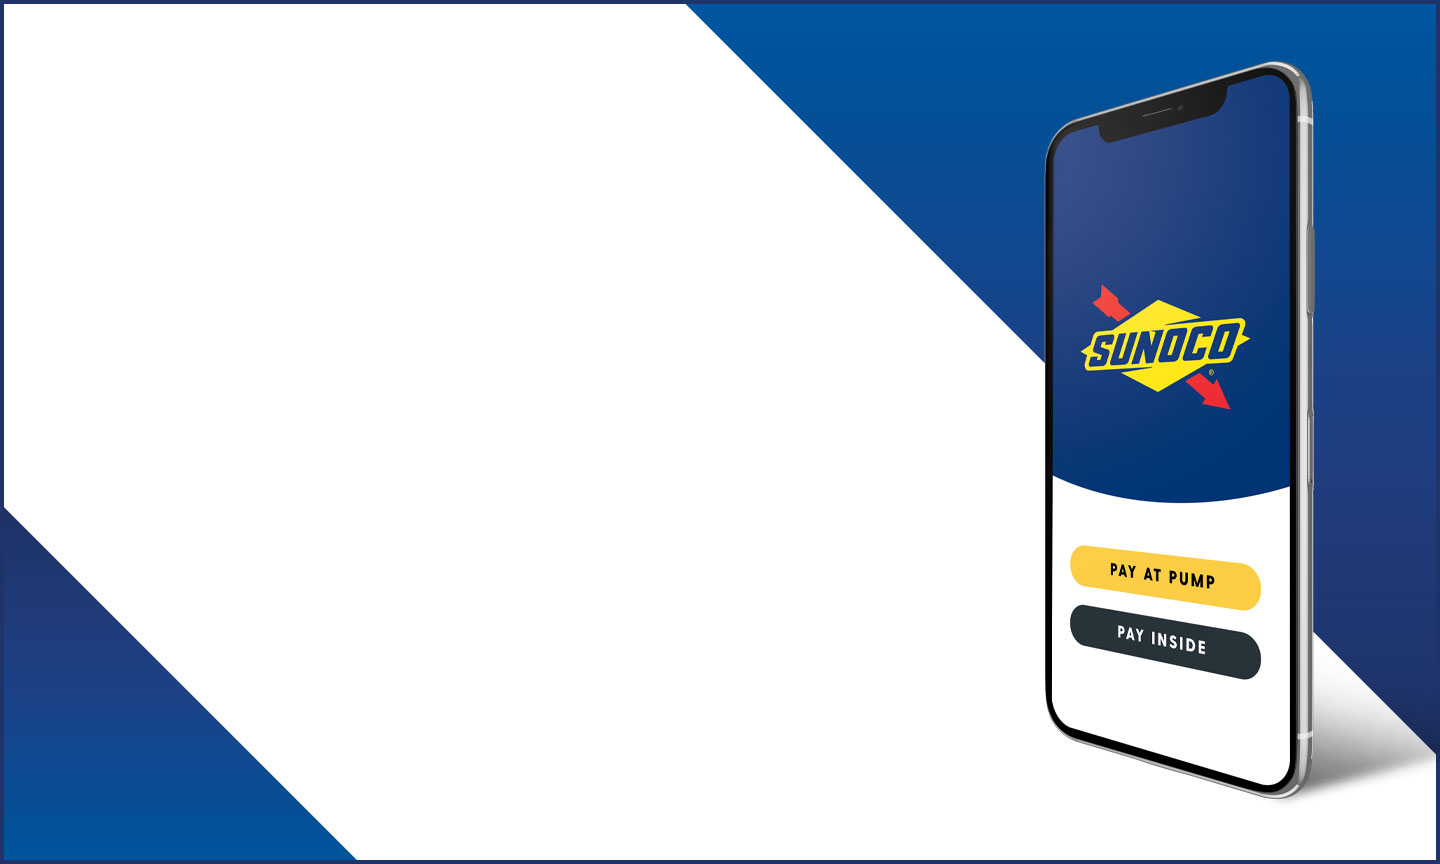 Download the Sunoco App